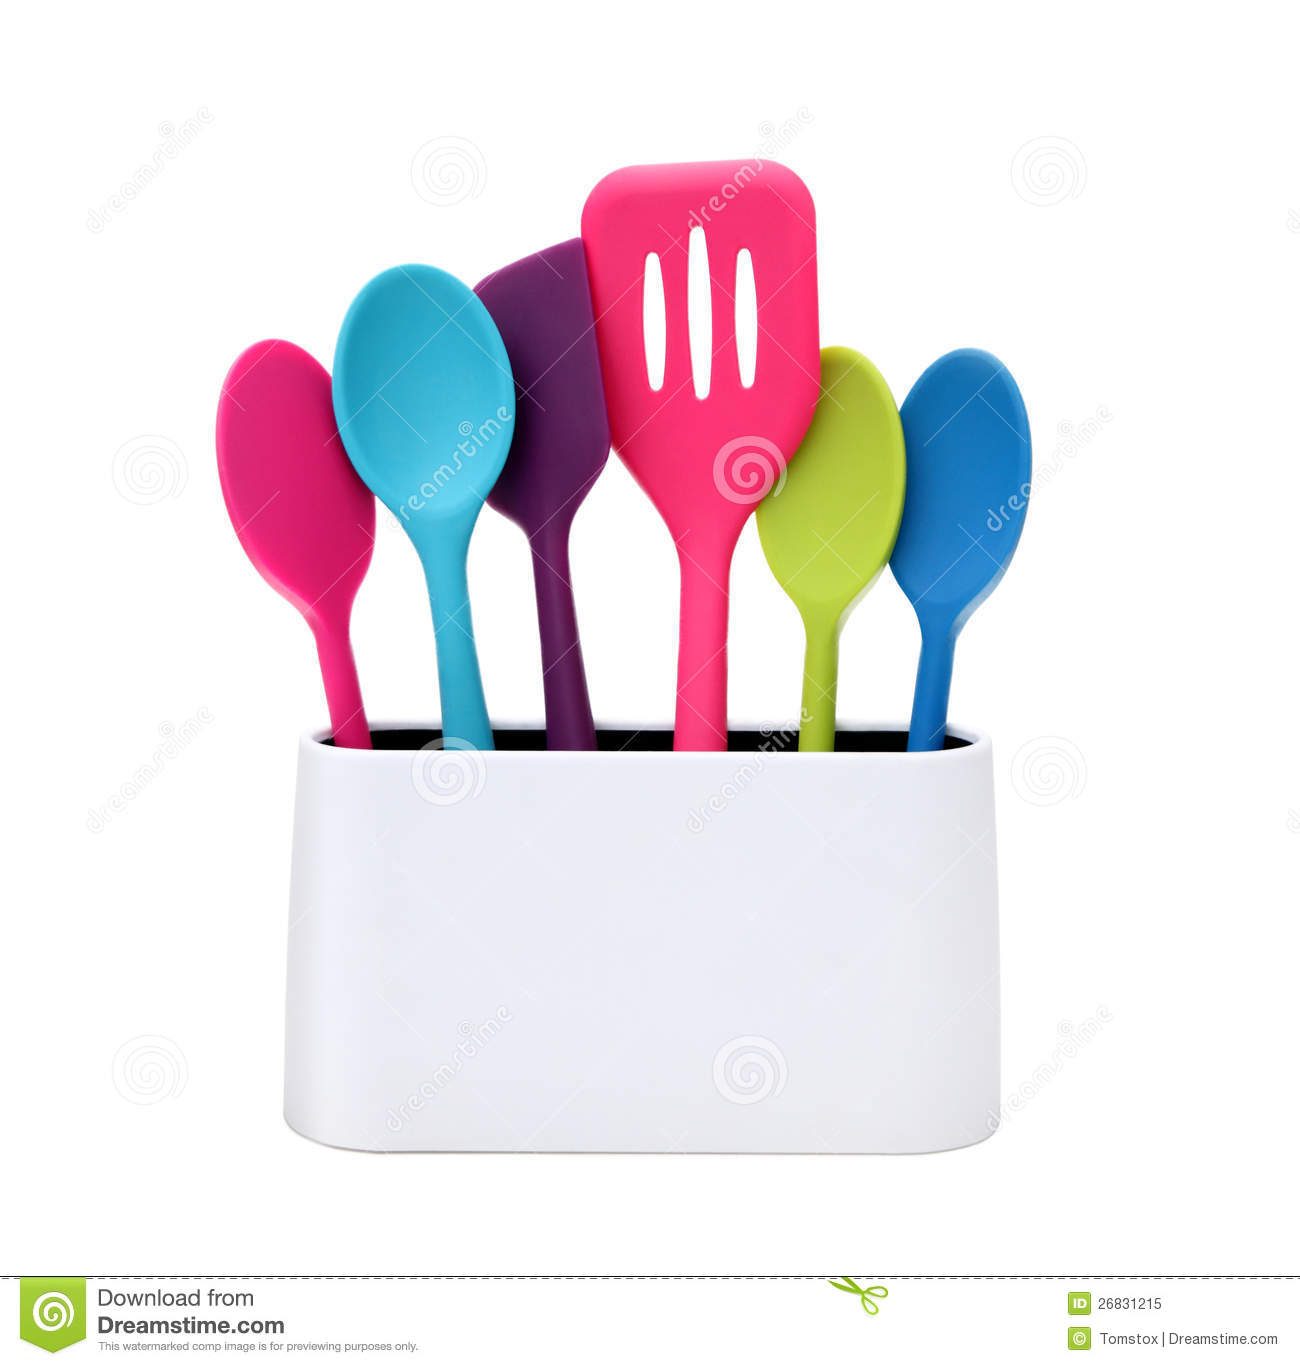 Cooking utensils drawing clipart panda free clipart images for Modern kitchen utensil